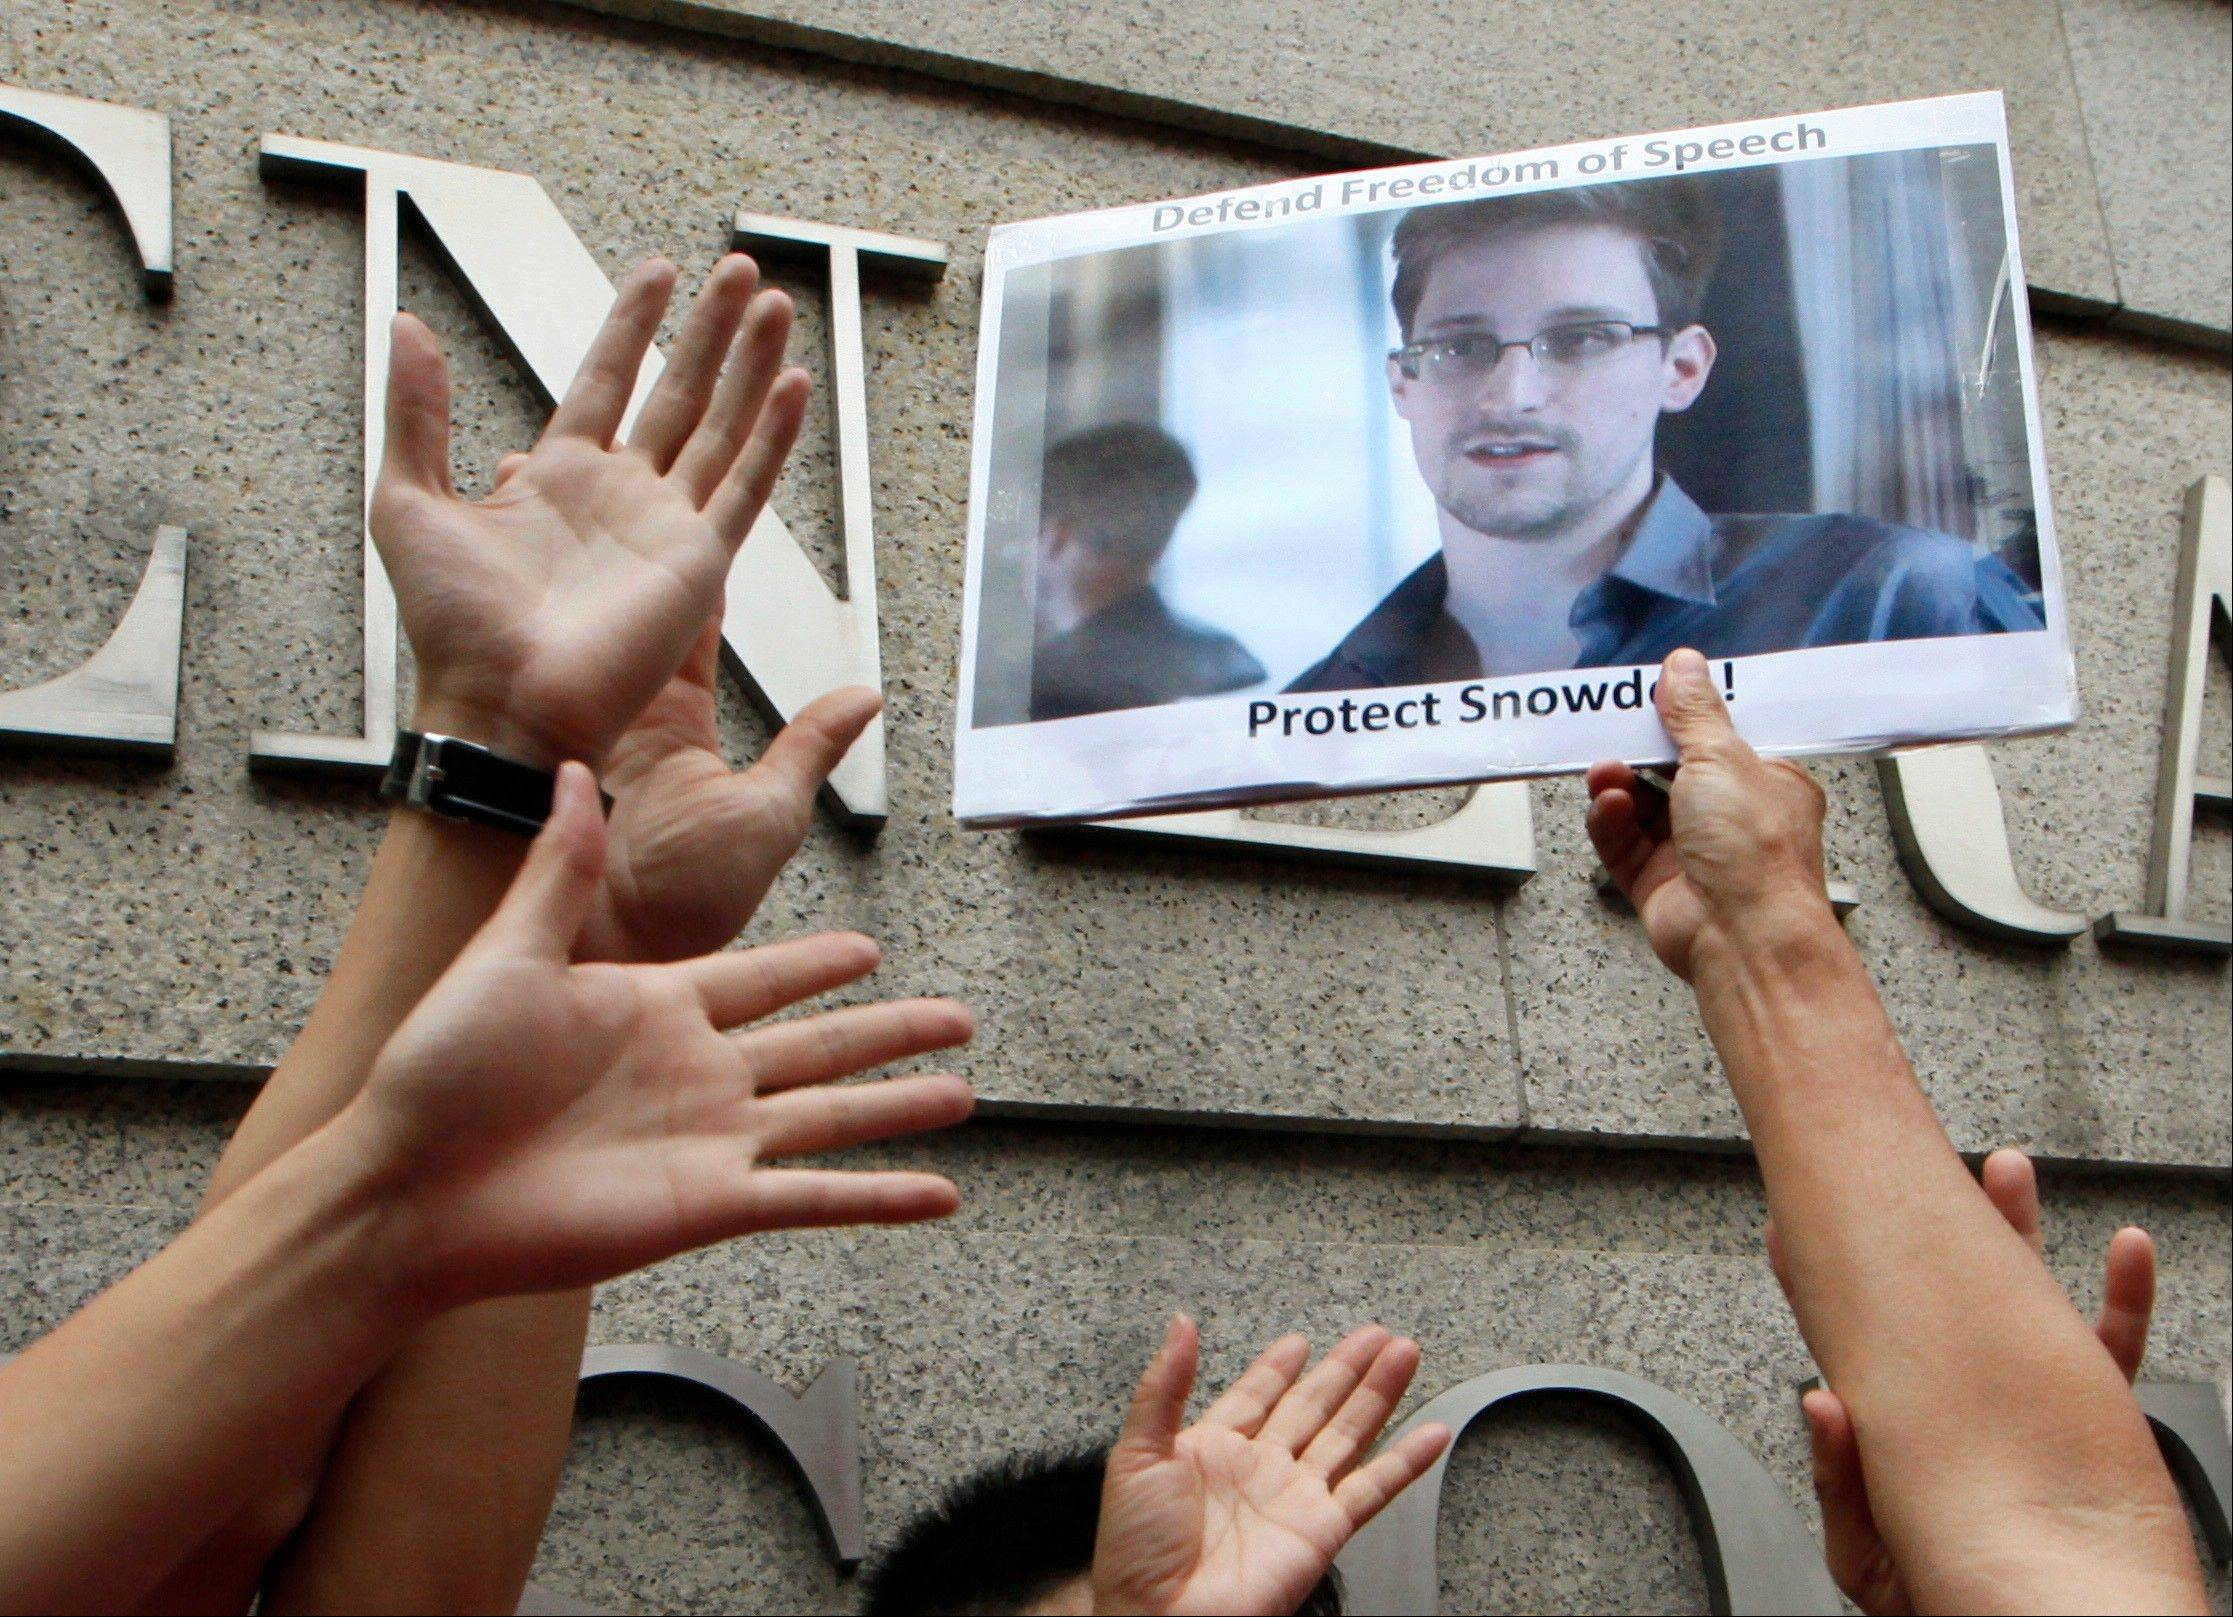 A supporter holds a picture of Edward Snowden, a former CIA employee who leaked top-secret information about U.S. surveillance programs, outside the U.S. Consulate General in Hong Kong Thursday, June 13, 2013.